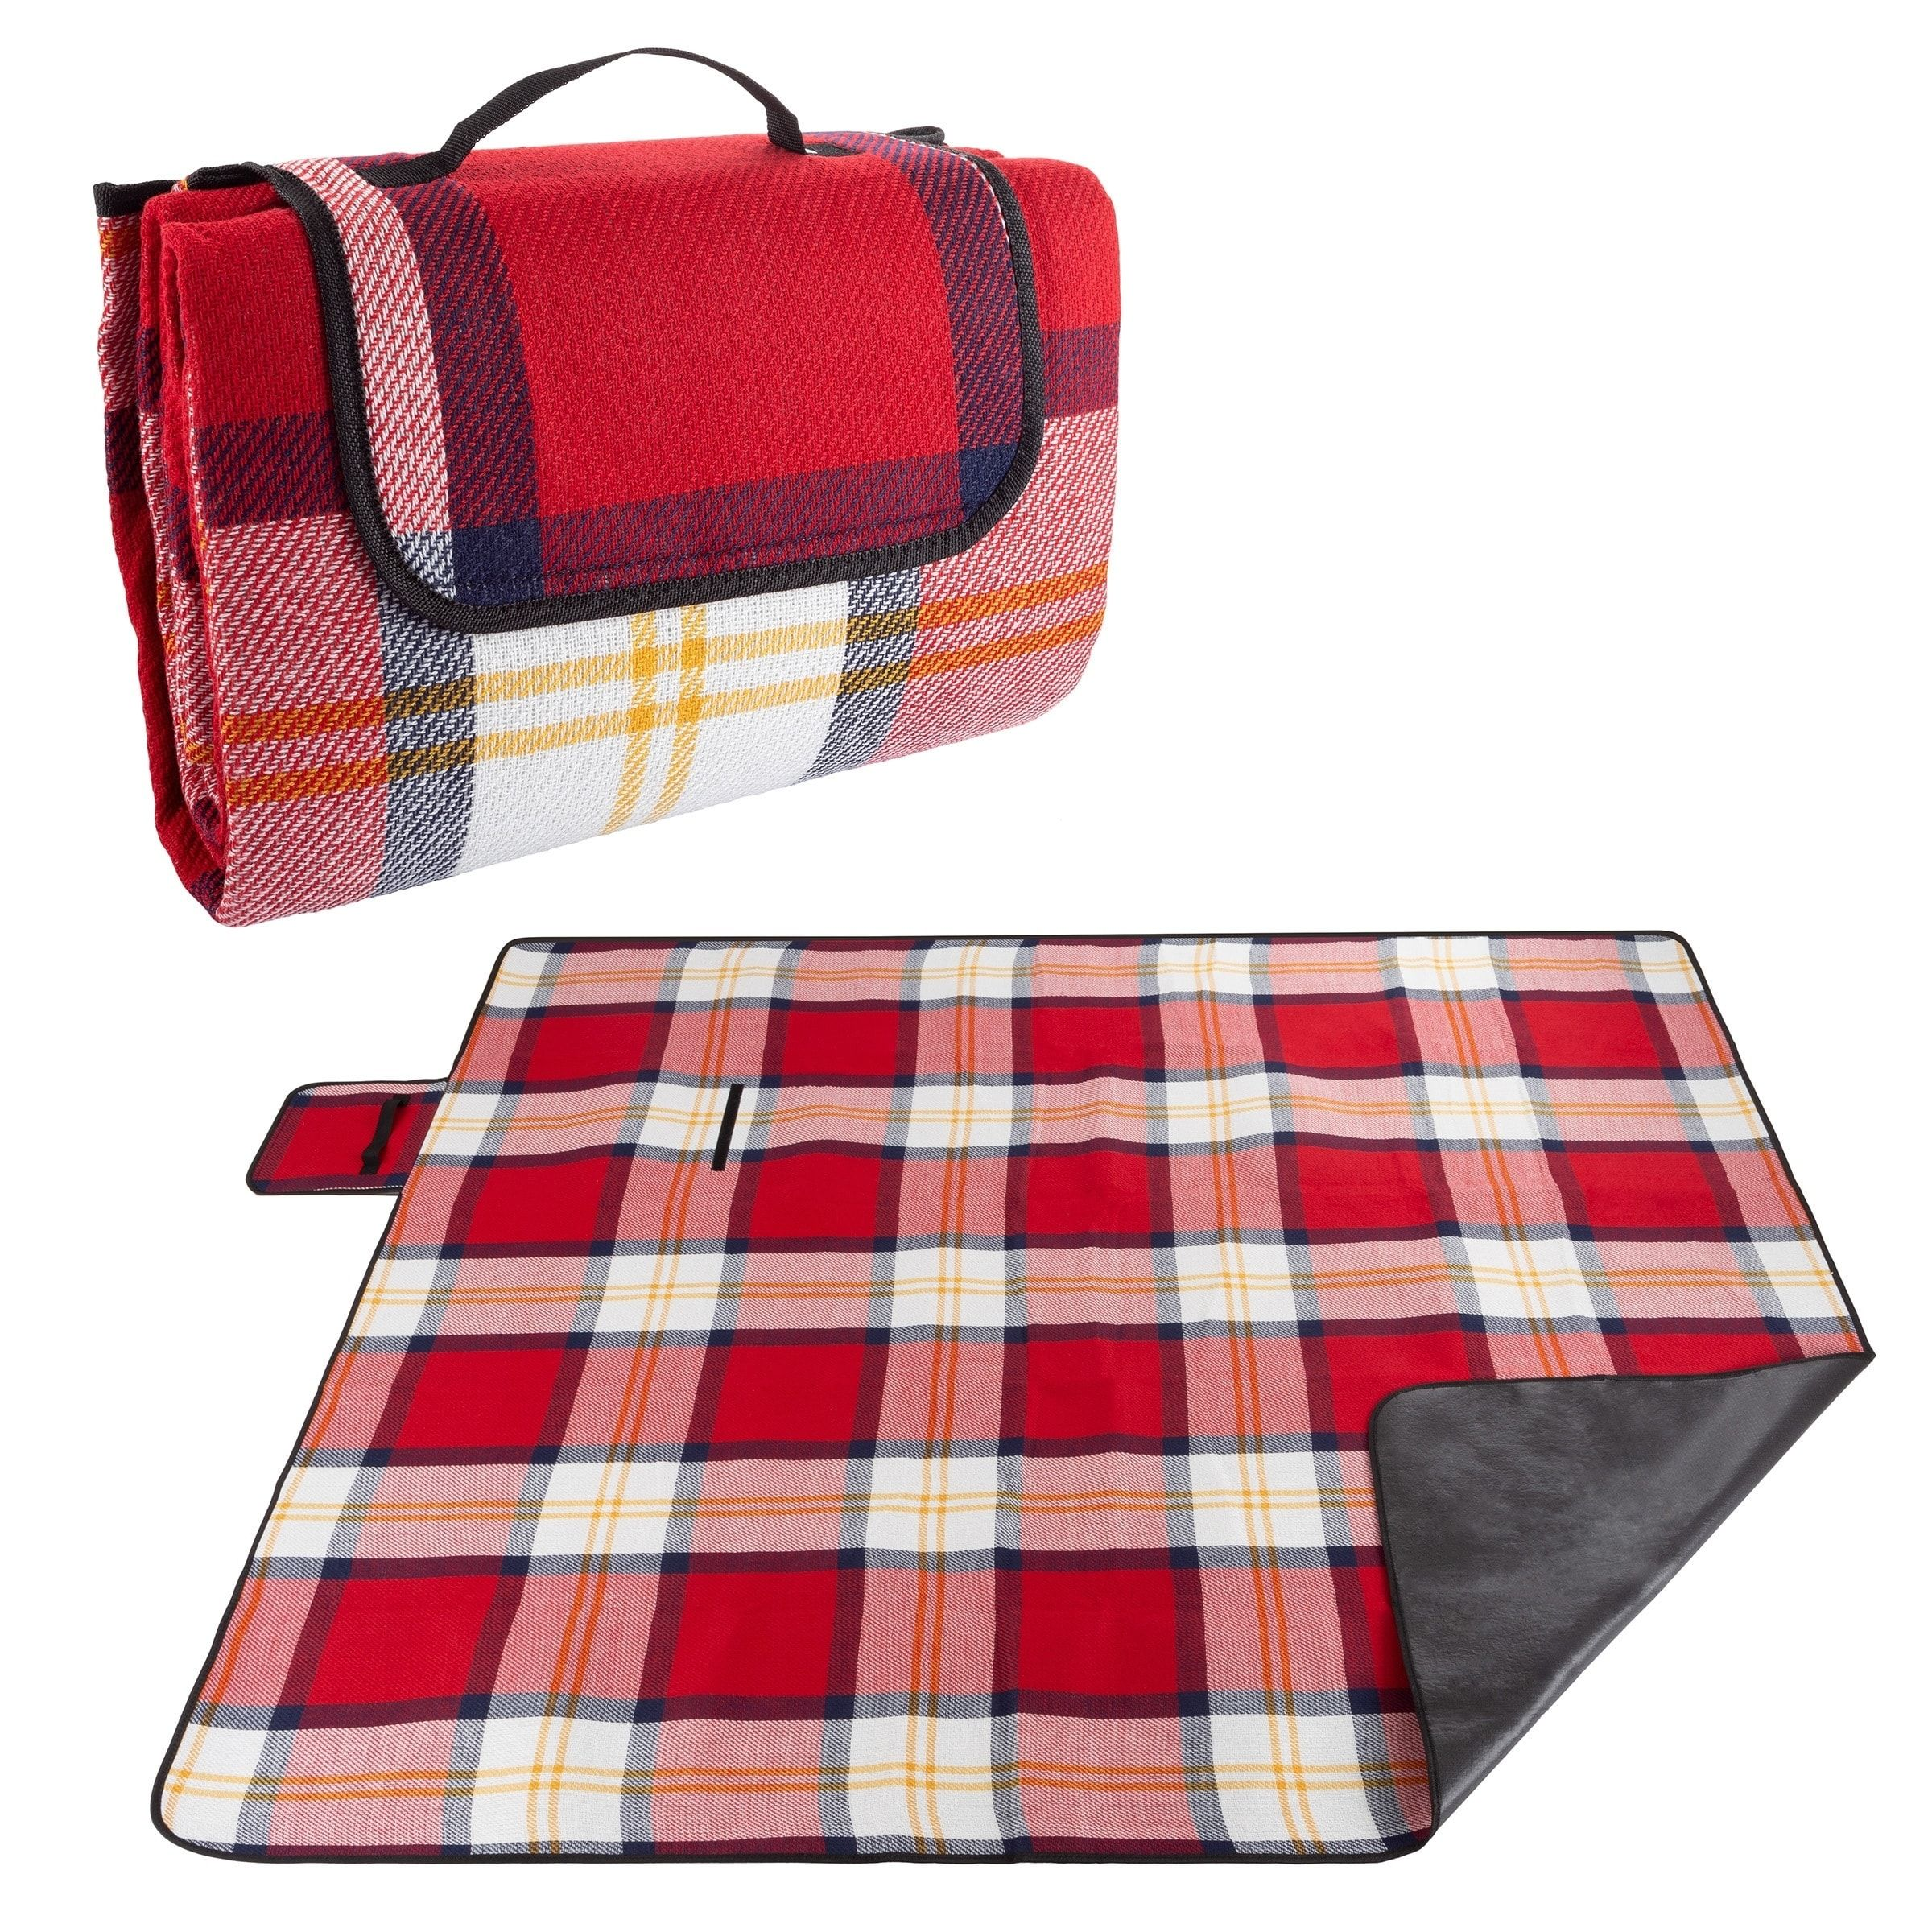 Waterproof Picnic Blanket With Foam Padding By Wakeman Outdoors